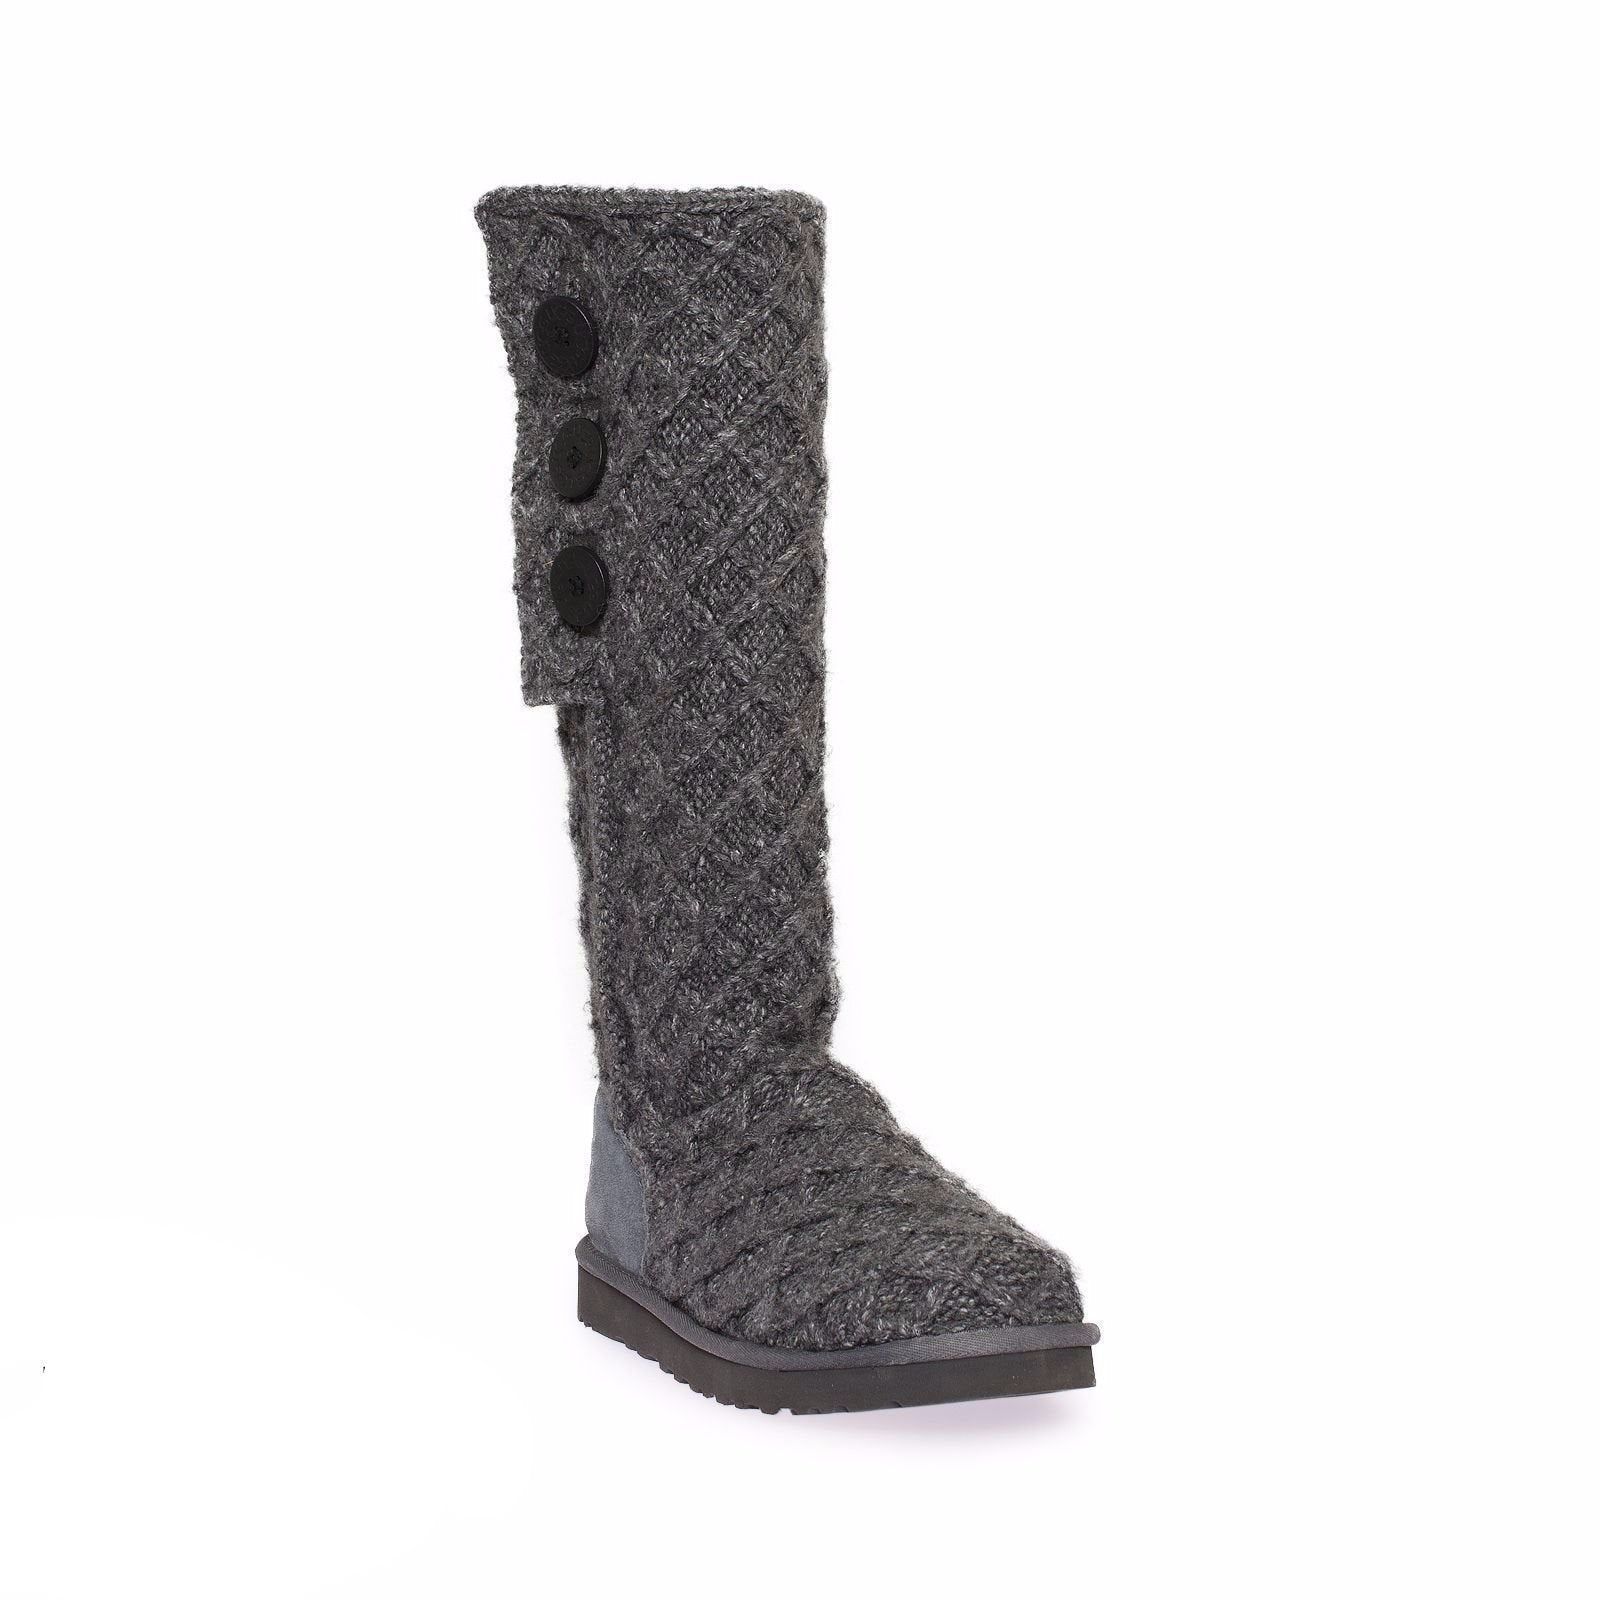 3a5f1755002 UGG Lattice Cardy Charcoal Boots